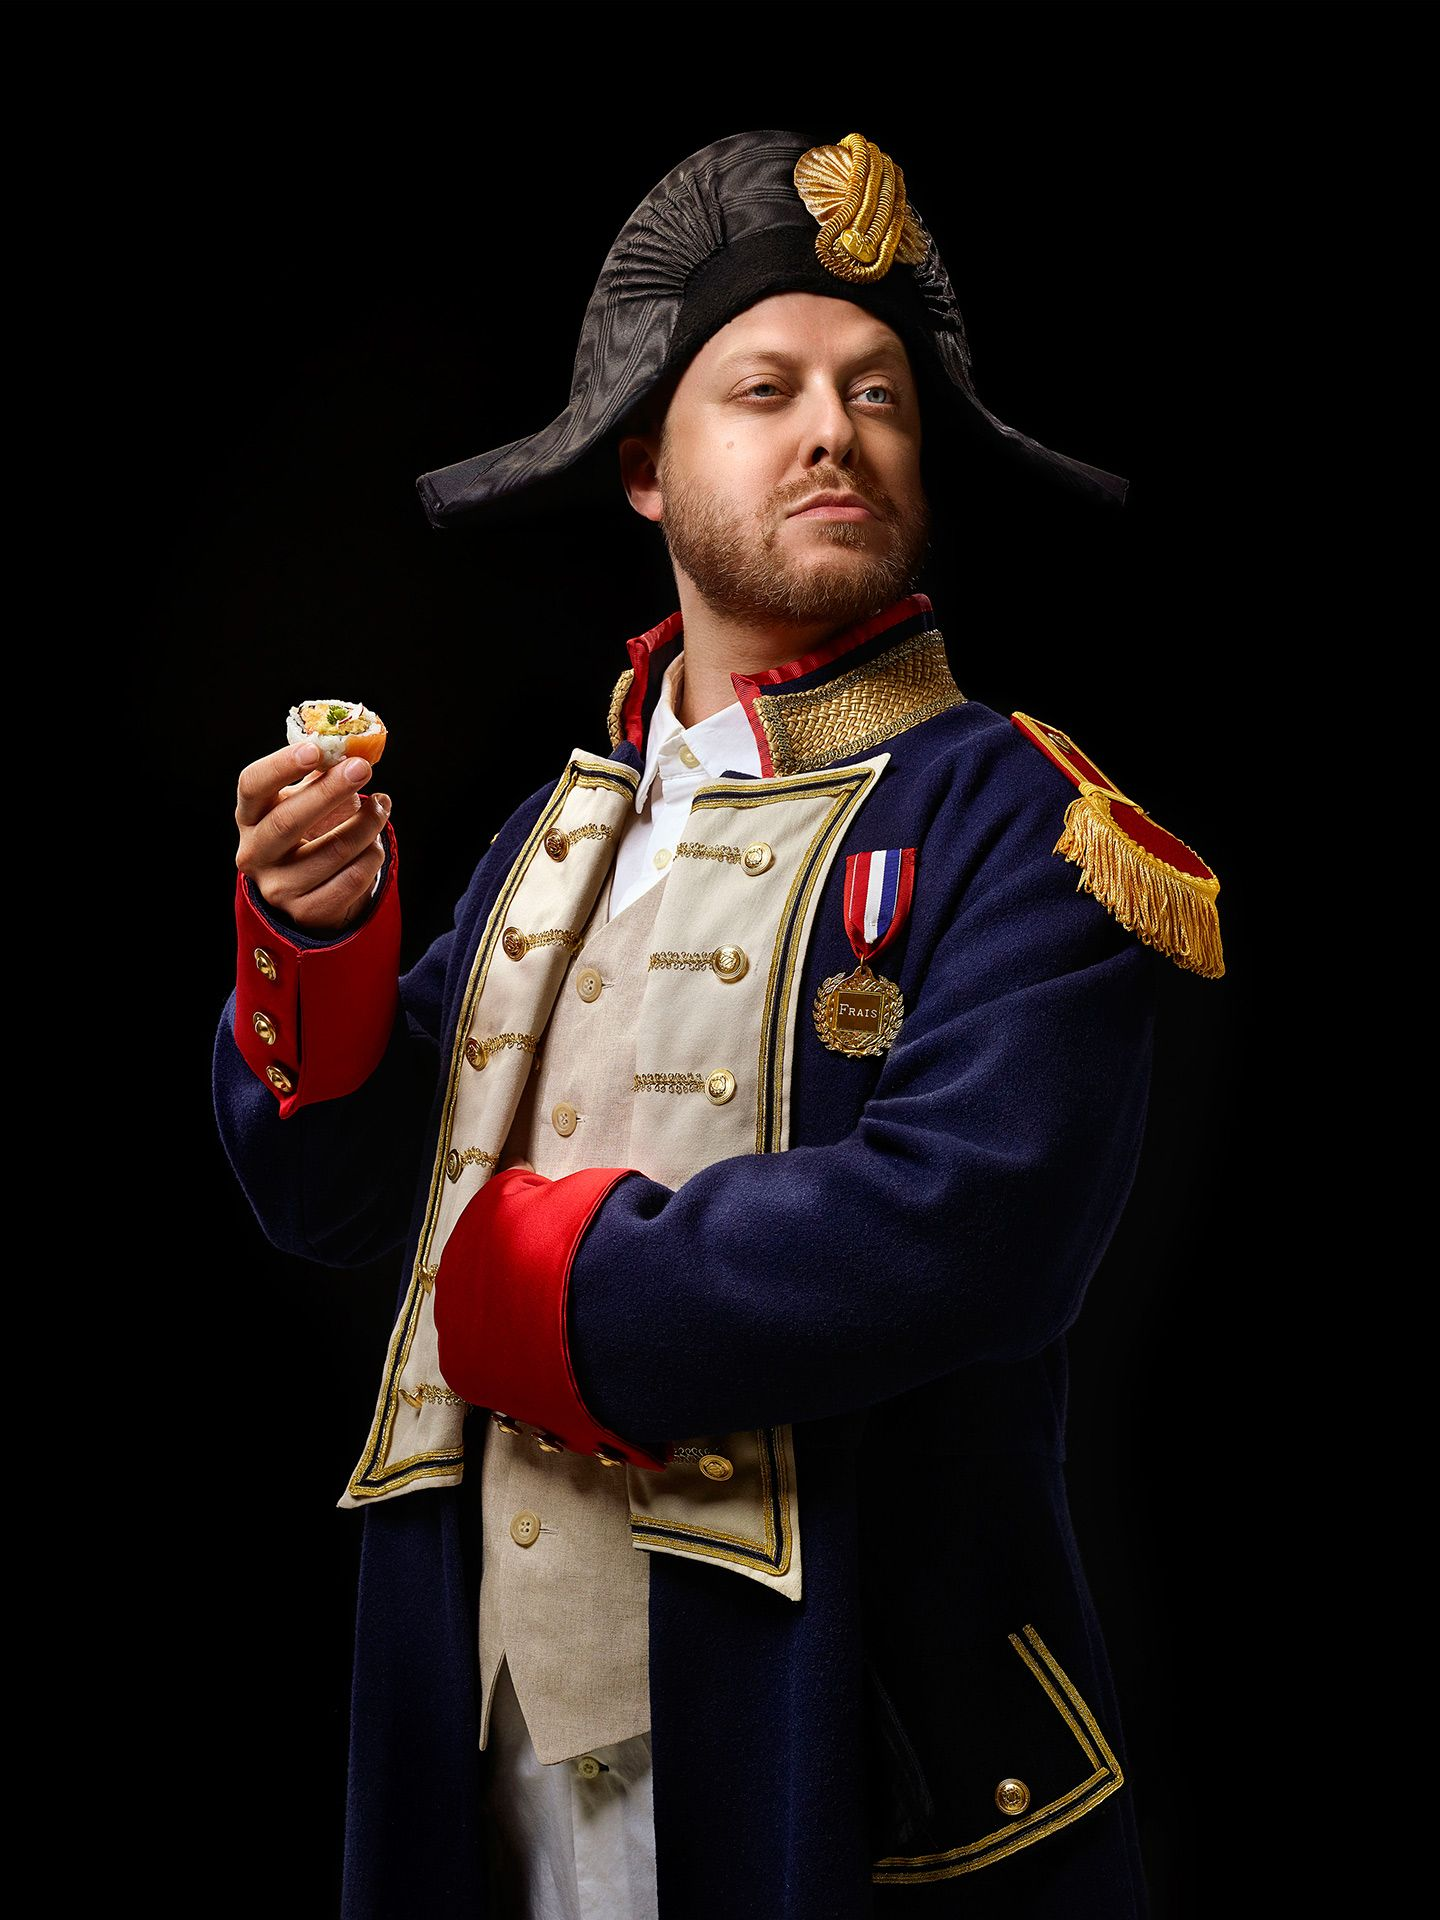 portrait of Guillaume Lambert dressed and posing as Napoleon holding a sushi by Jocelyn Michel for Voir Restos Guide